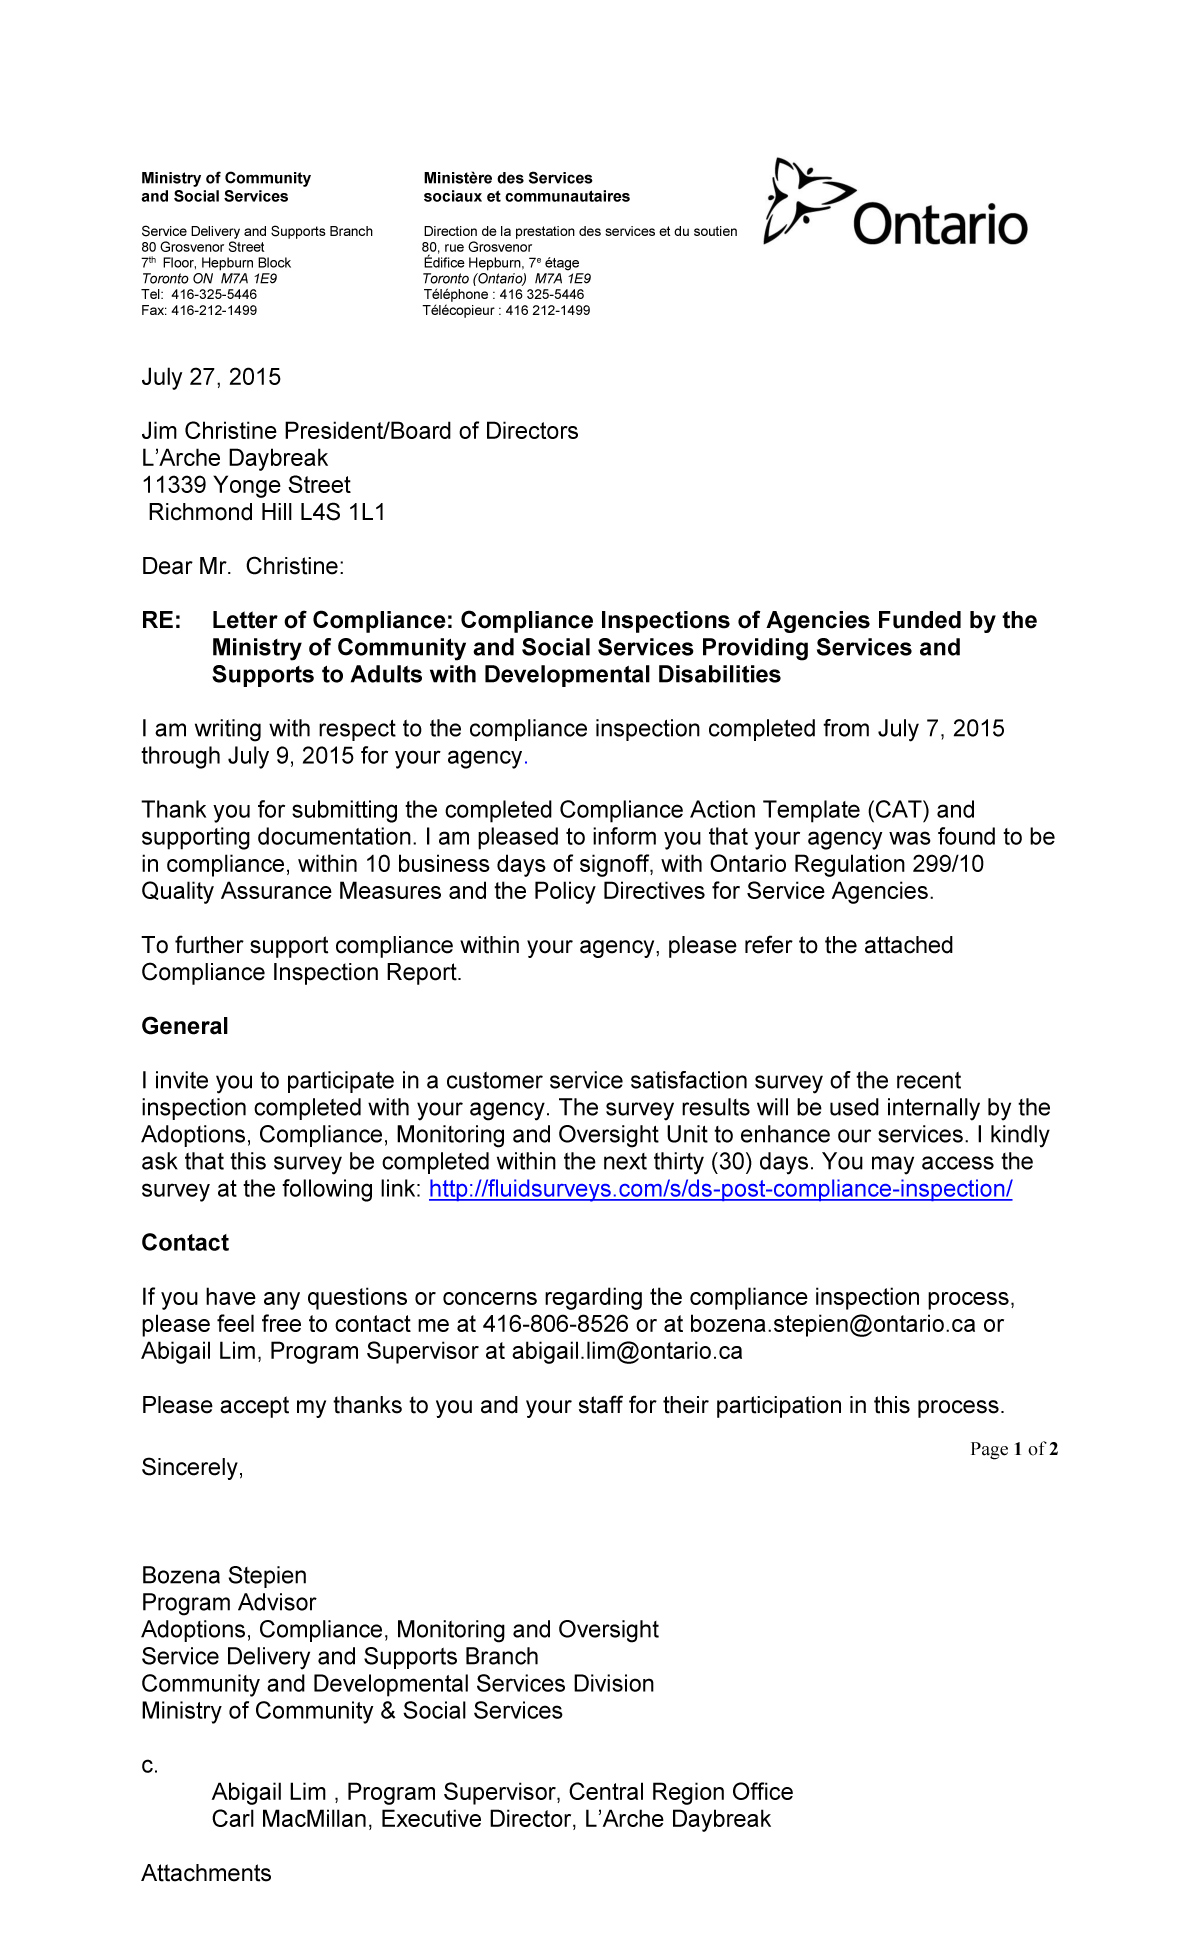 Letter for 2015 from the Ministry of Community and Social Services (MCSS) confirming L'Arche Daybreak's compliance with MCSS regulations. (Ontario Regulation 299/10 Quality Assurance Measures and the Policy Directives for Service Agencies.